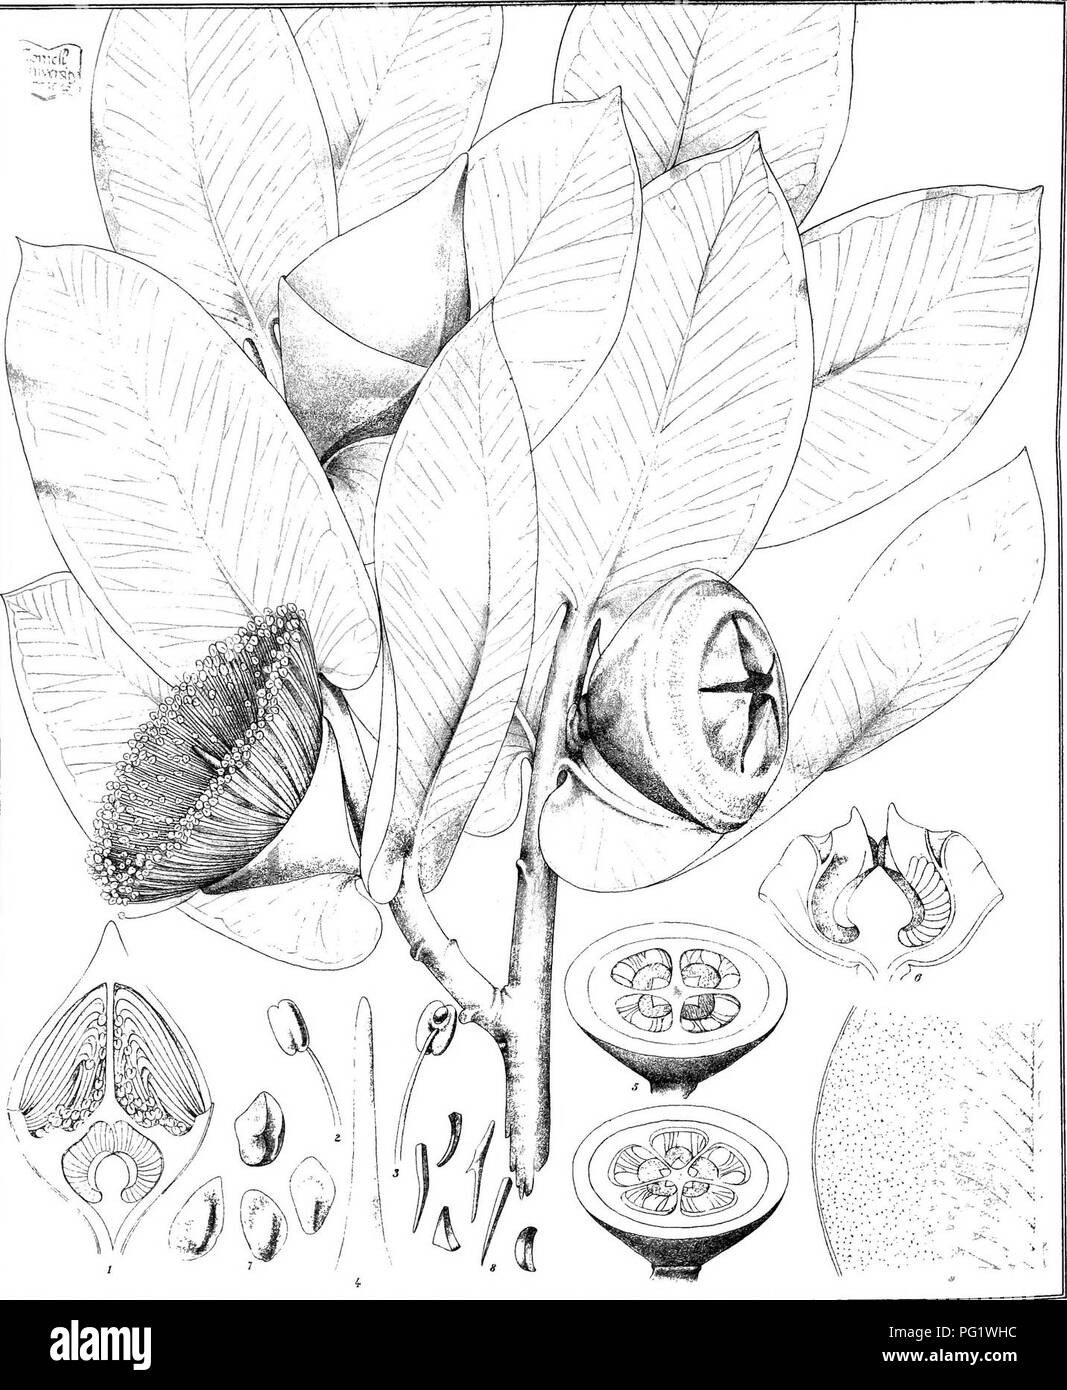 . Eucalyptographia. A descriptive atlas of the eucalypts of Australia and the adjoining islands;. Eucalyptus; Botany. Toatiel CTToeael&C:lfi. YvVl direxi> Sleam Li'tho GoT.Pruihitg OificeMelft li(g|%g)te iiiii(giP(s)^aiF]p§i.»^//^^^'9^. Please note that these images are extracted from scanned page images that may have been digitally enhanced for readability - coloration and appearance of these illustrations may not perfectly resemble the original work.. Mueller, Ferdinand von, 1825-1896. Melbourne, J. Ferres, Govt. Print; [etc. ,etc. ] - Stock Image